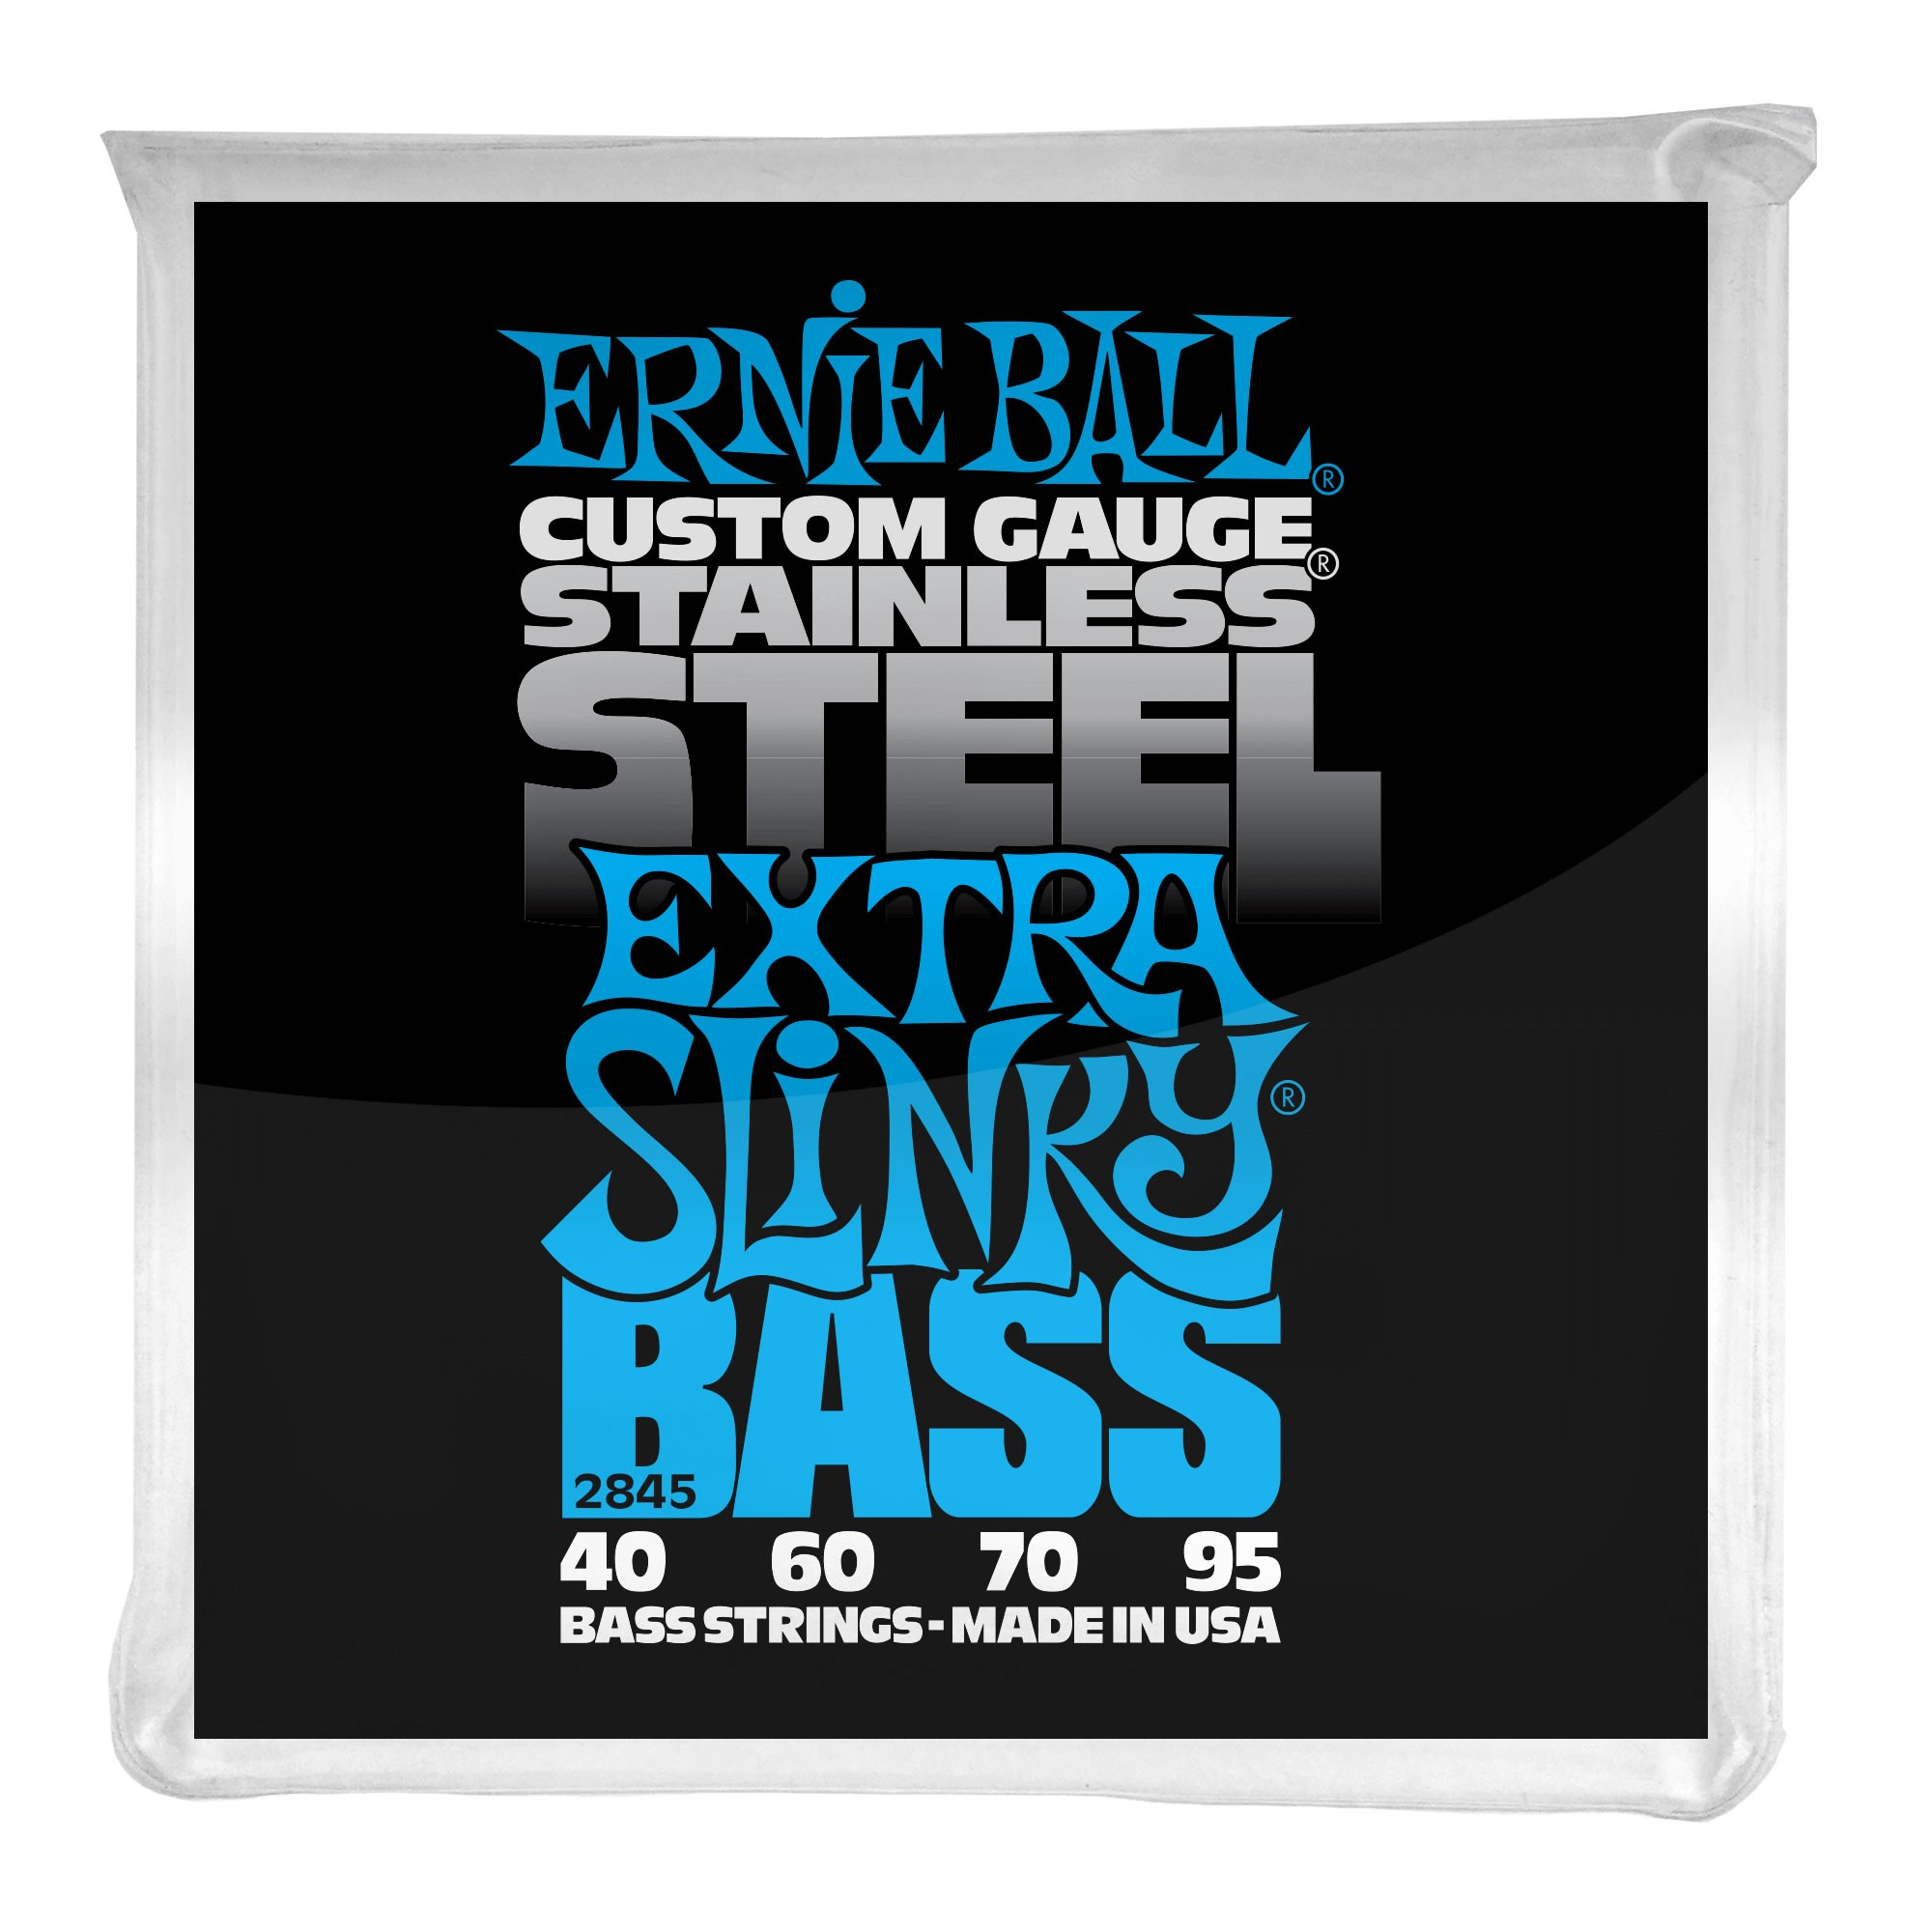 ernie ball slinky stainless steel electric bass strings best bass gear. Black Bedroom Furniture Sets. Home Design Ideas